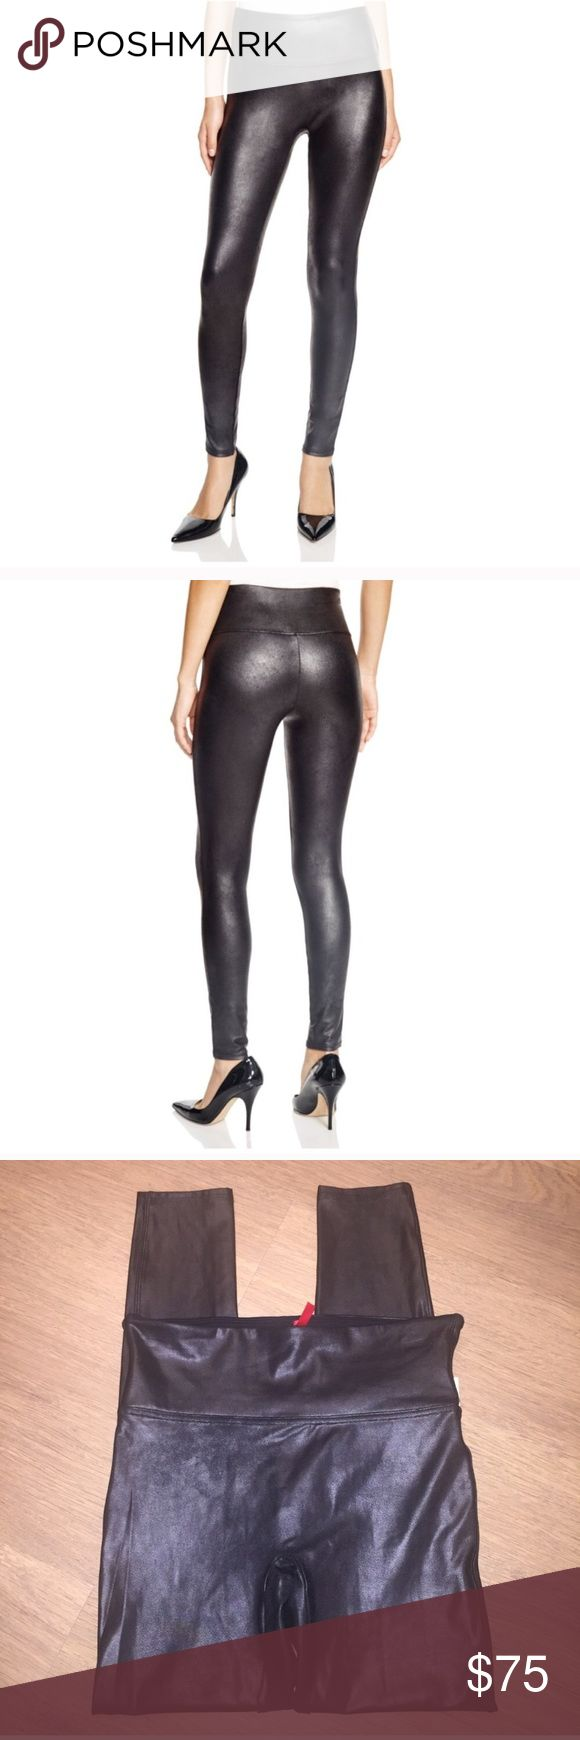 New Spanx Faux Leather Leggings Yoga Pants medium A slick finish adds extra edge to stretchy faux-leather leggings flattered by a subtle control top.  87% nylon, 13% spandex Machine wash cold, dry flat By SPANX; imported Size medium. New with partial tags attached. No spanx paper tags SPANX Pants Leggings